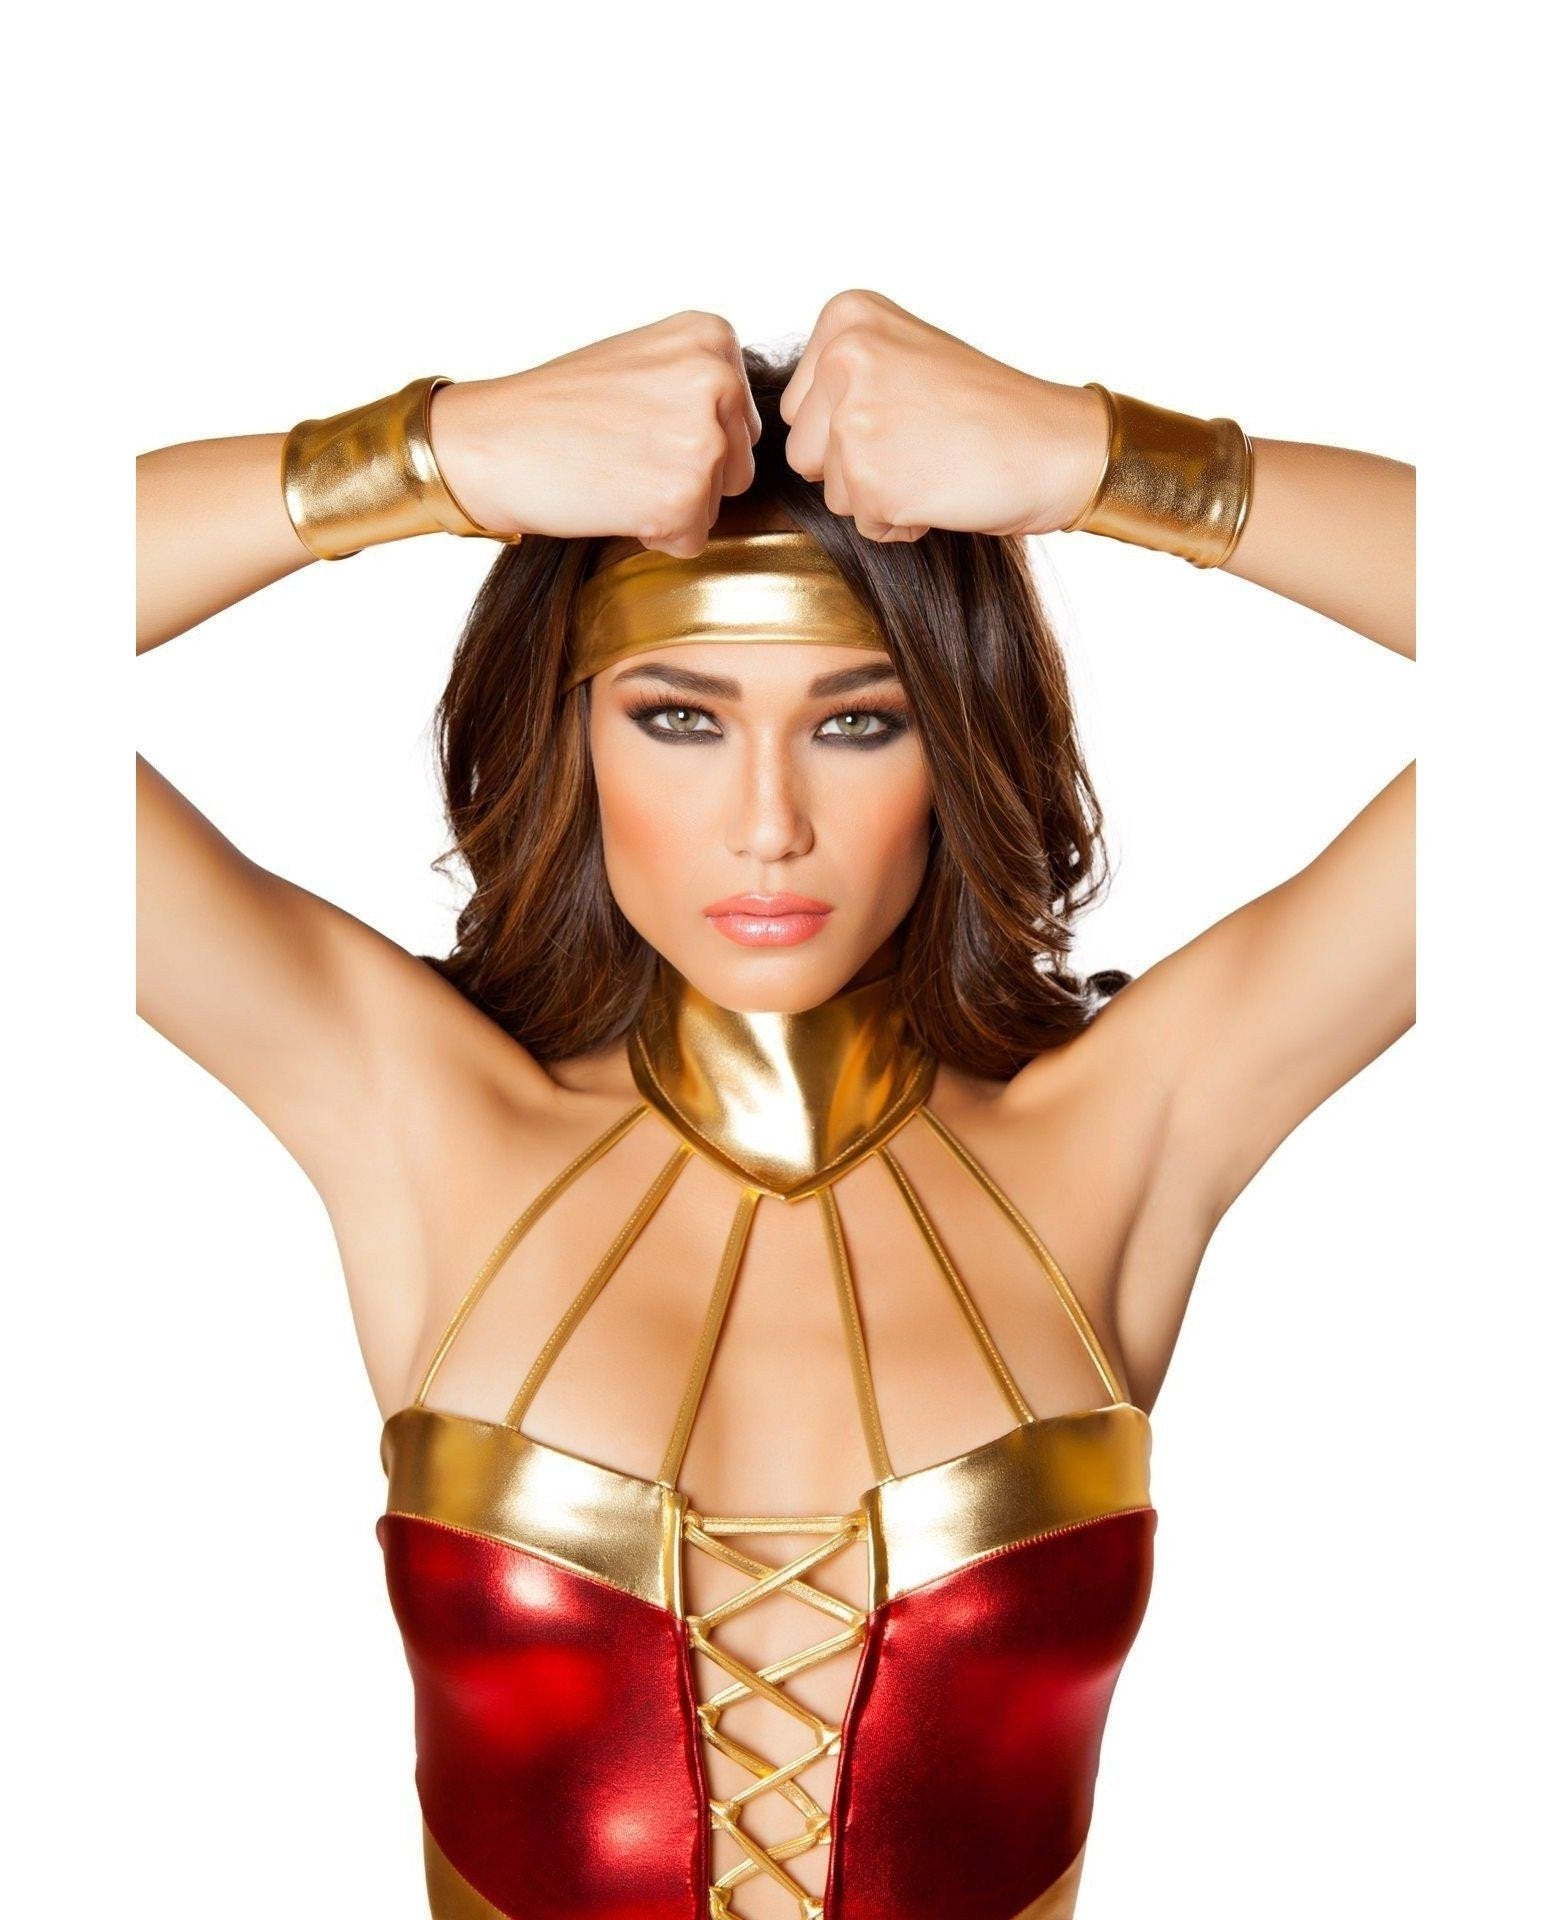 Hot Woman Superhero Costume Costumes Size LargeColor Red/Blue/GoldNakees